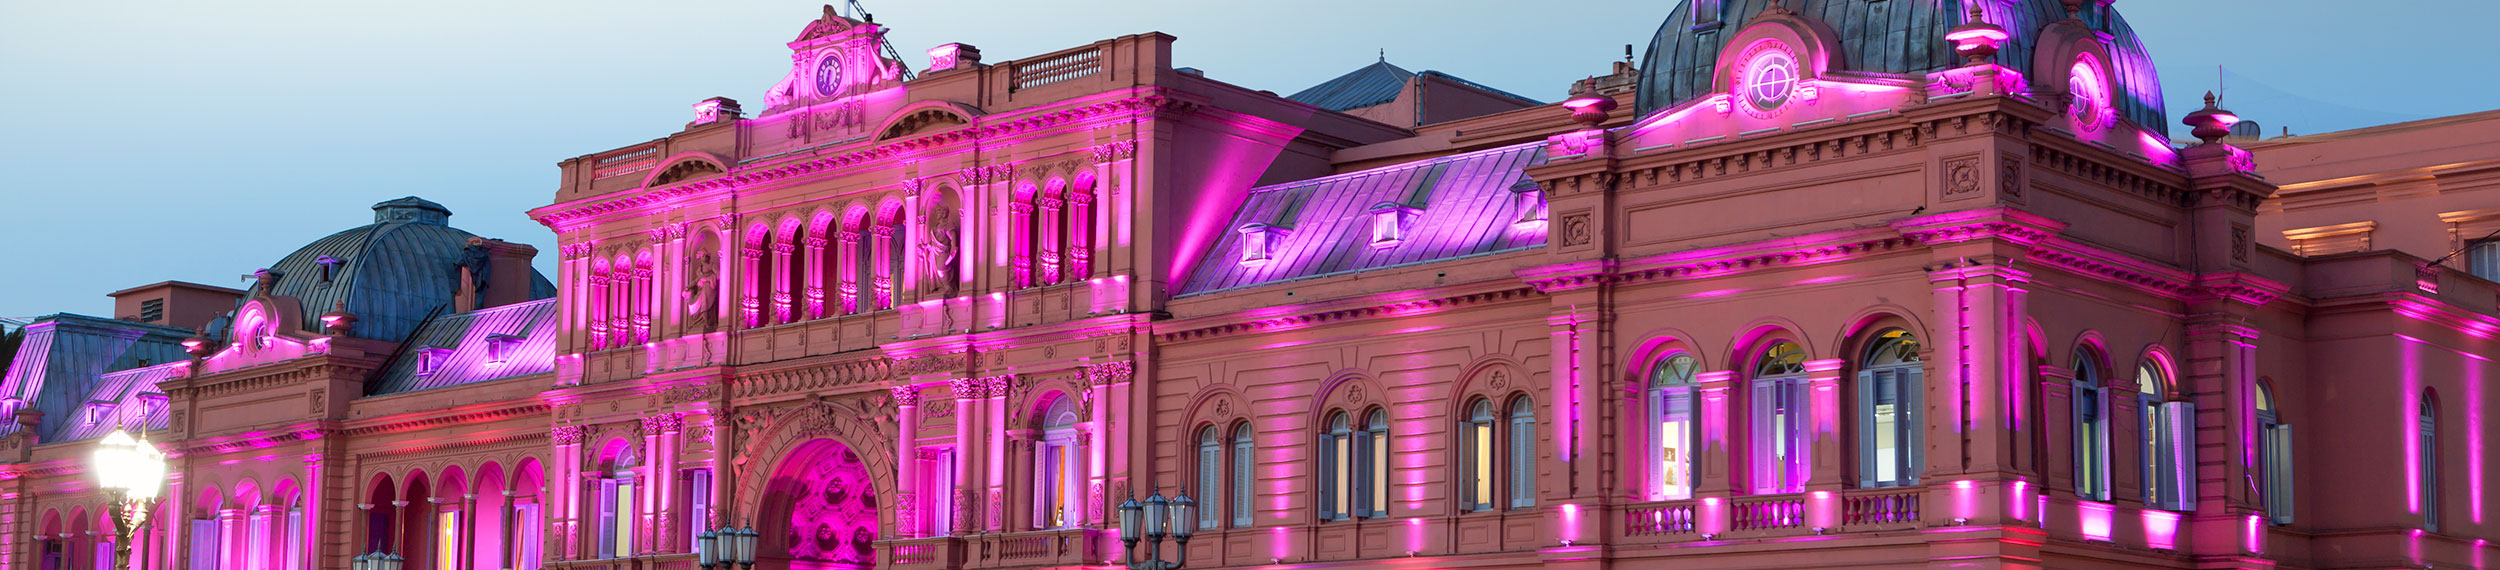 Casa Rosada in Buenos Aires, Argentina is lit up in a pink hue in the evening with a blue sky and wispy clouds above.